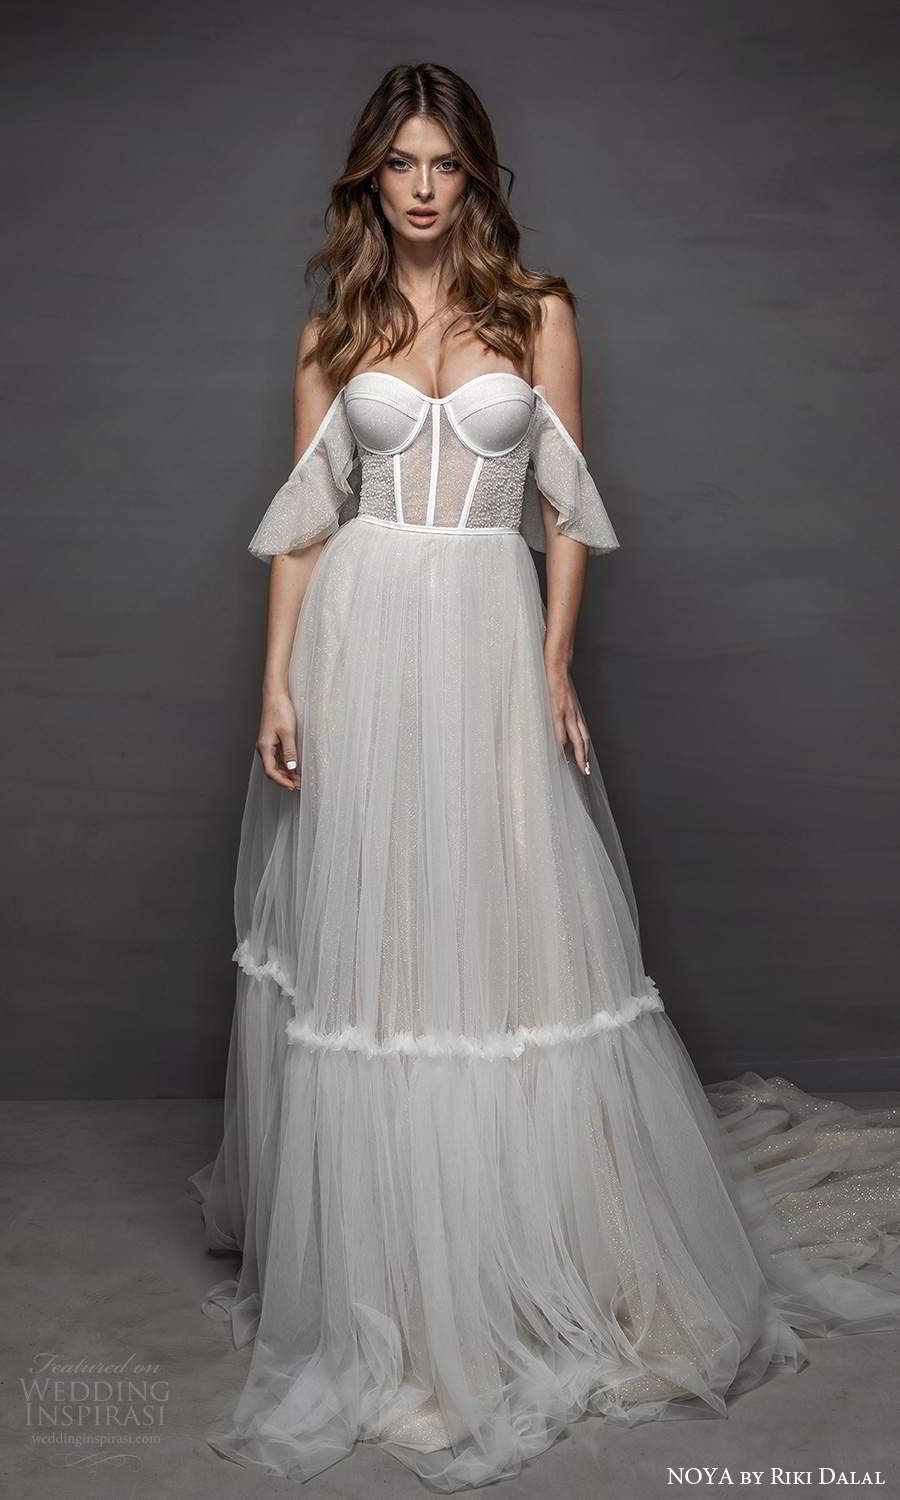 noya riki dalal 2021 bridal off shoulder sleeves swag straps sweetheart neckline corset bodice tulle a line ball gown wedding dress chapel train (11) mv